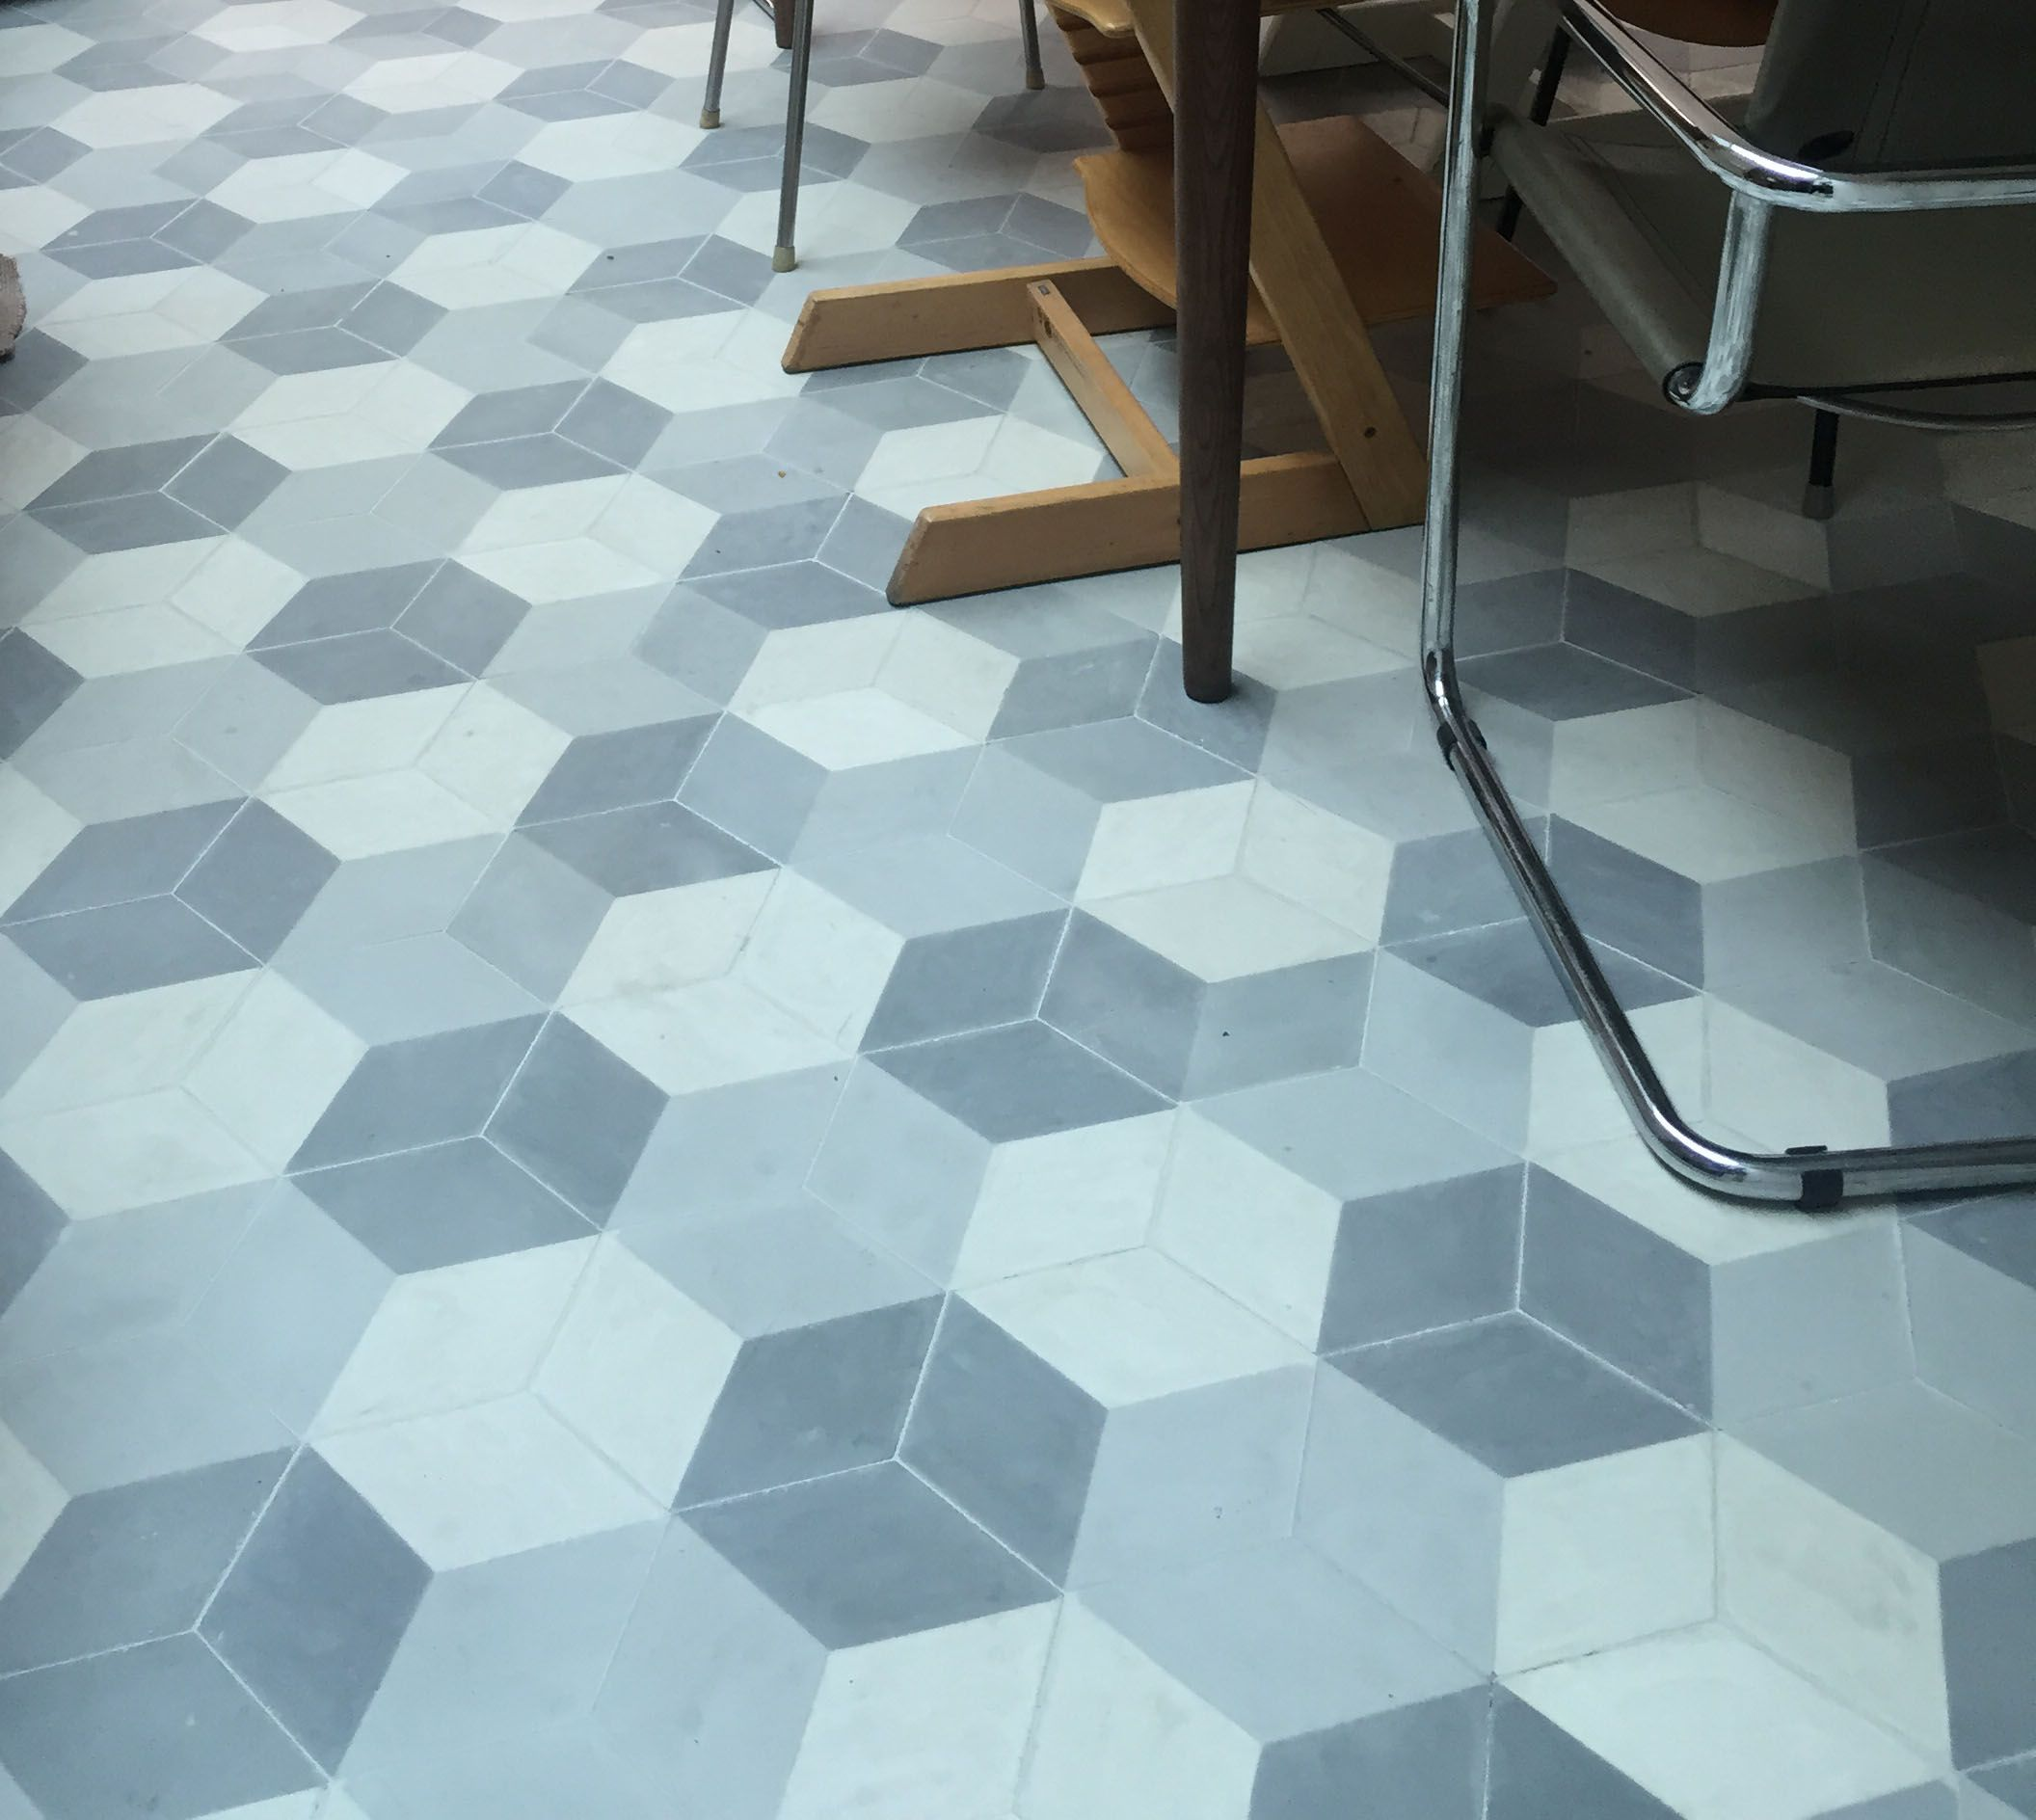 Our Hexagonal Geometric In Situ Using The Alternative Laying Pattern